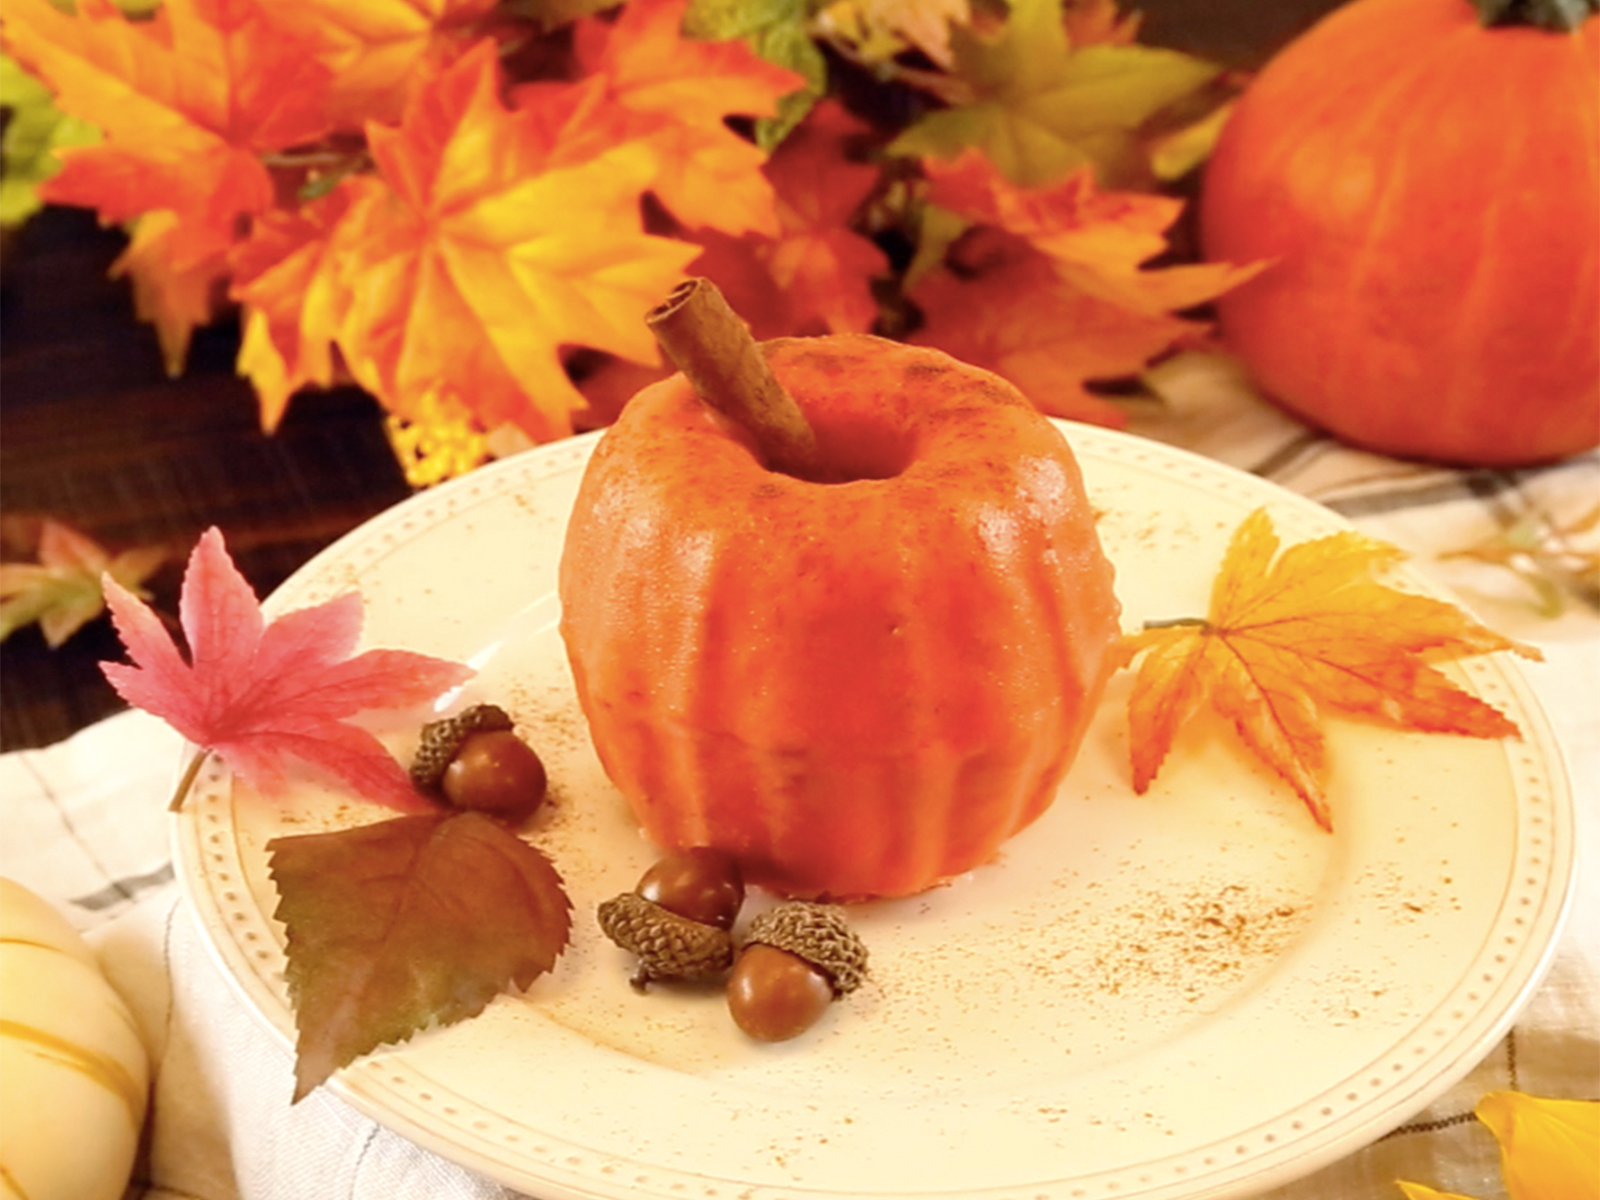 Embrace your pumpkin obsession by making these Mini Pumpkin Bundt Cakes